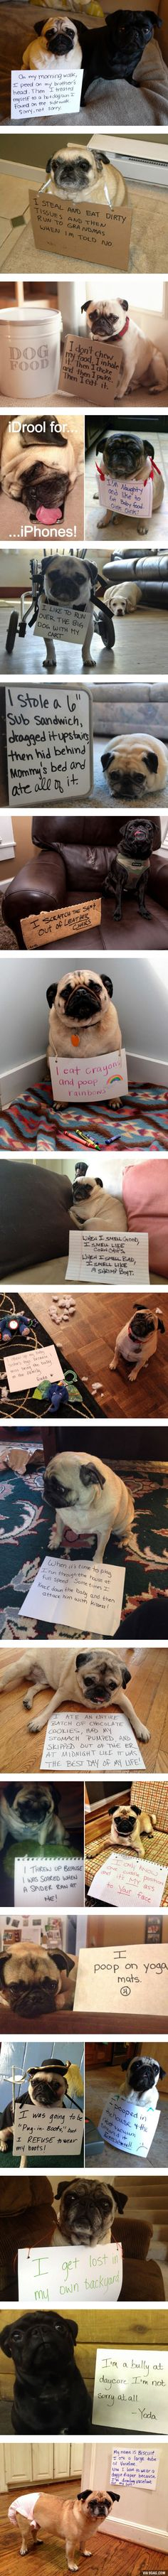 Pug Shaming. Not gonna lie, some of these were pretty funny!